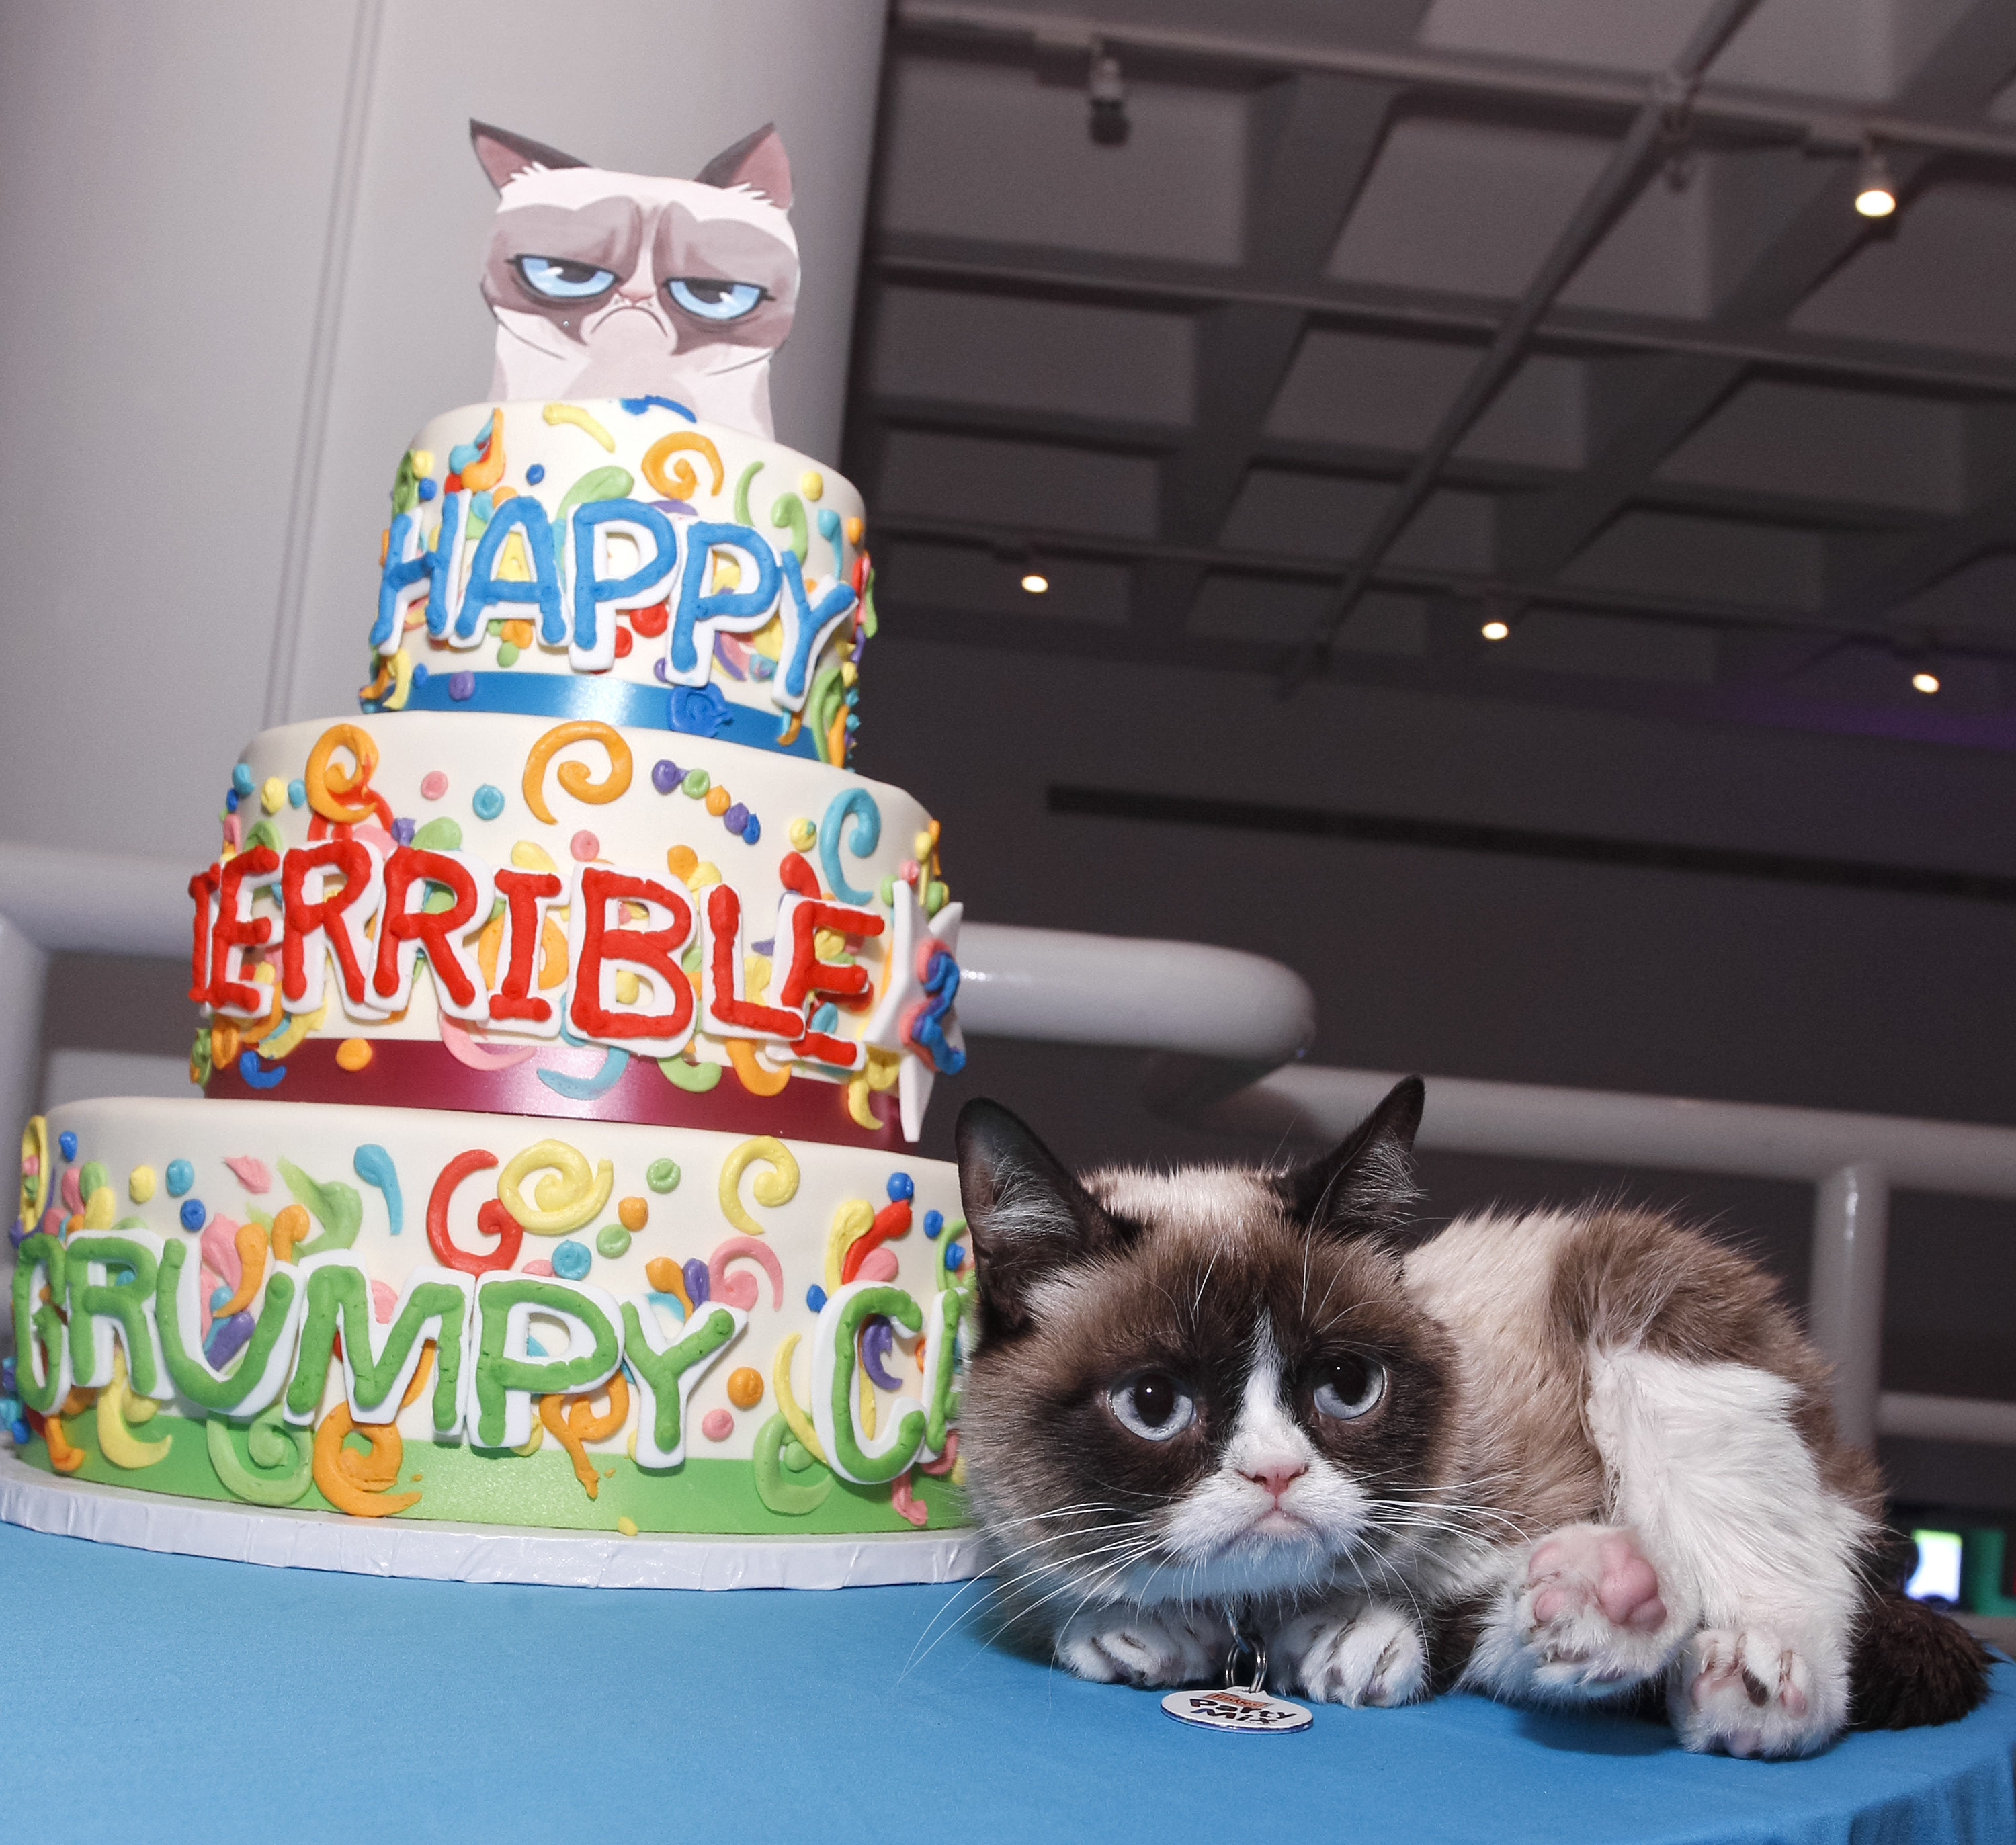 http://www.metro.us/newyork/entertainment/gossip/2014/05/01/grumpy-cat-shares-pearls-wisdom-second-birthday-party/